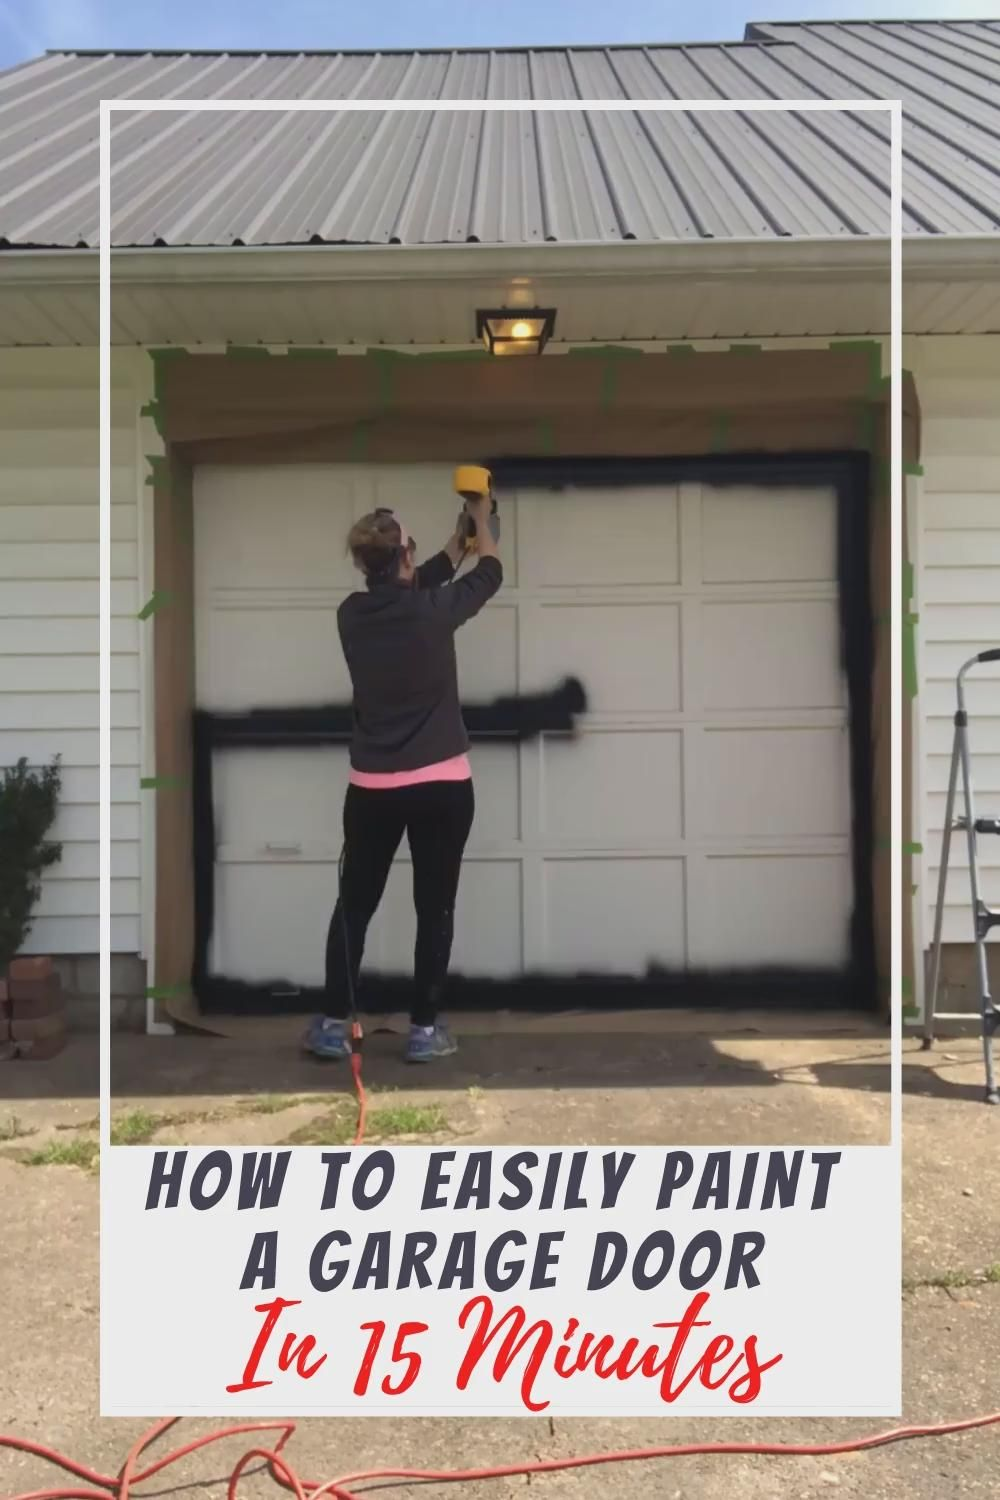 Easy tutorial to quickly  easily paint a garage door in 15 minutes or less! #diyproject #curbappeal #garagedoor